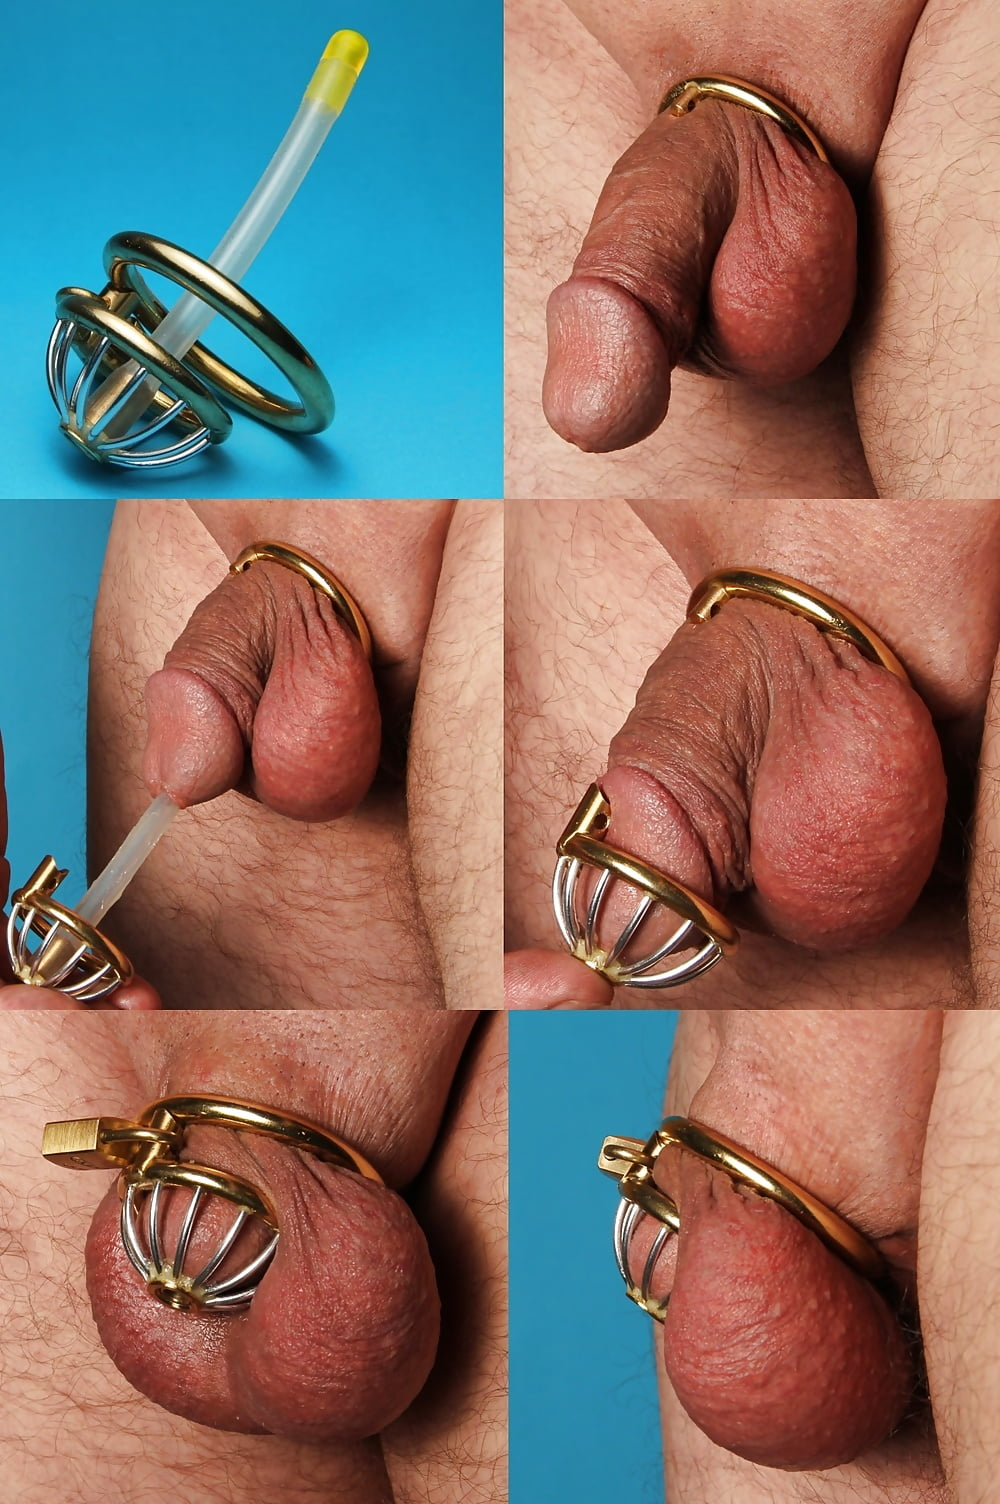 Small penis locked in permanent chastity humiliation